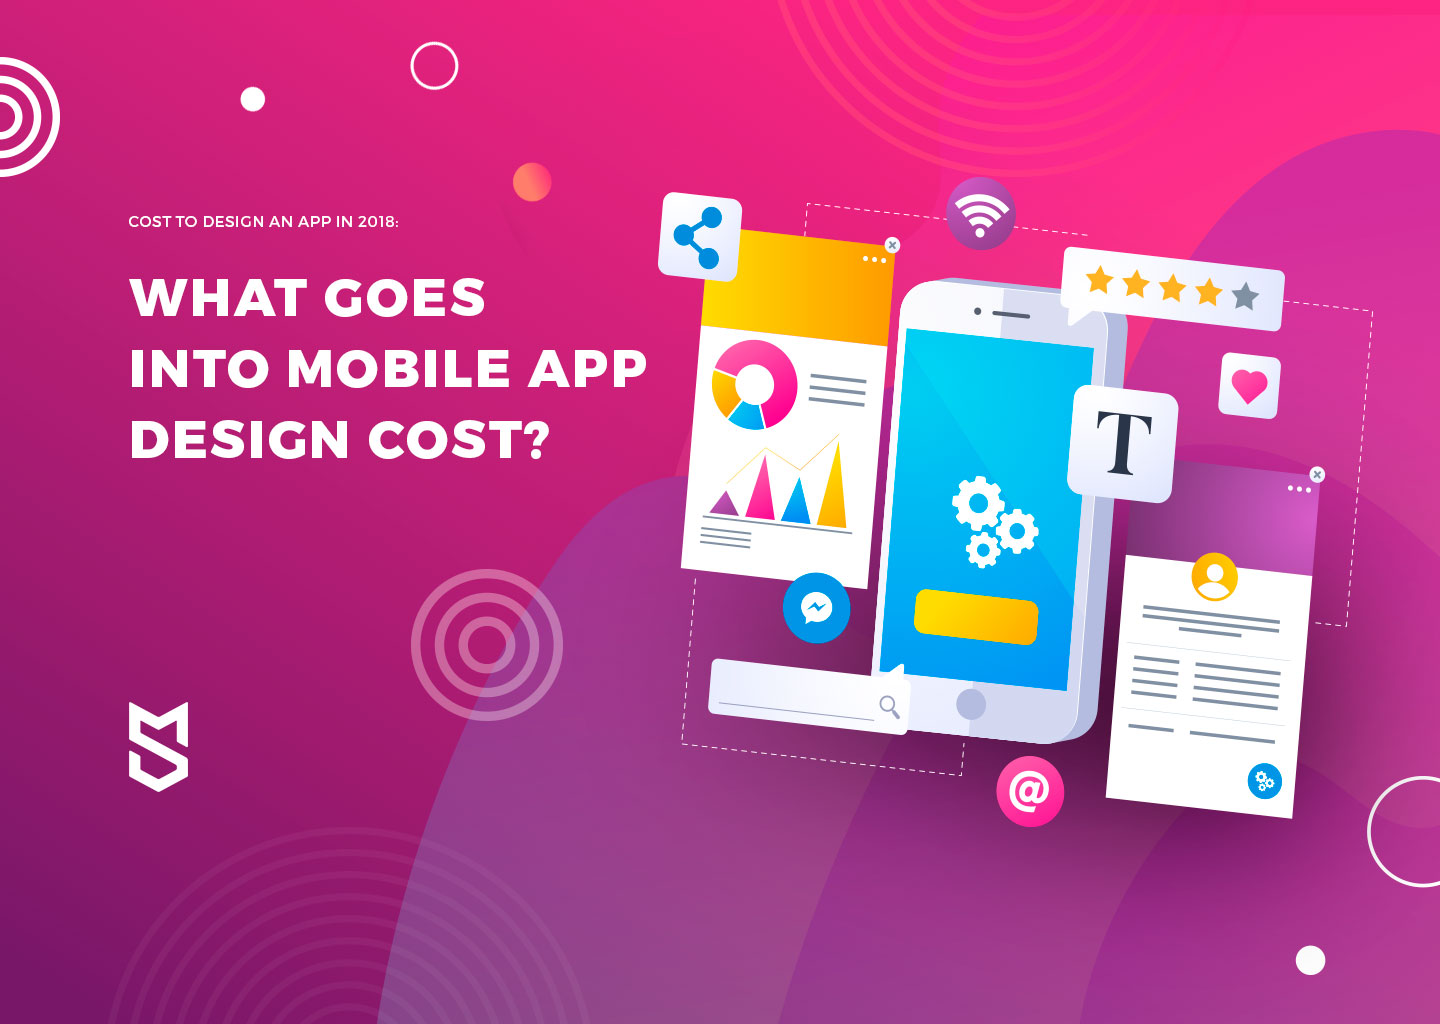 Cost to Design an App in 2019: What Goes into the Cost of Mobile App Design?